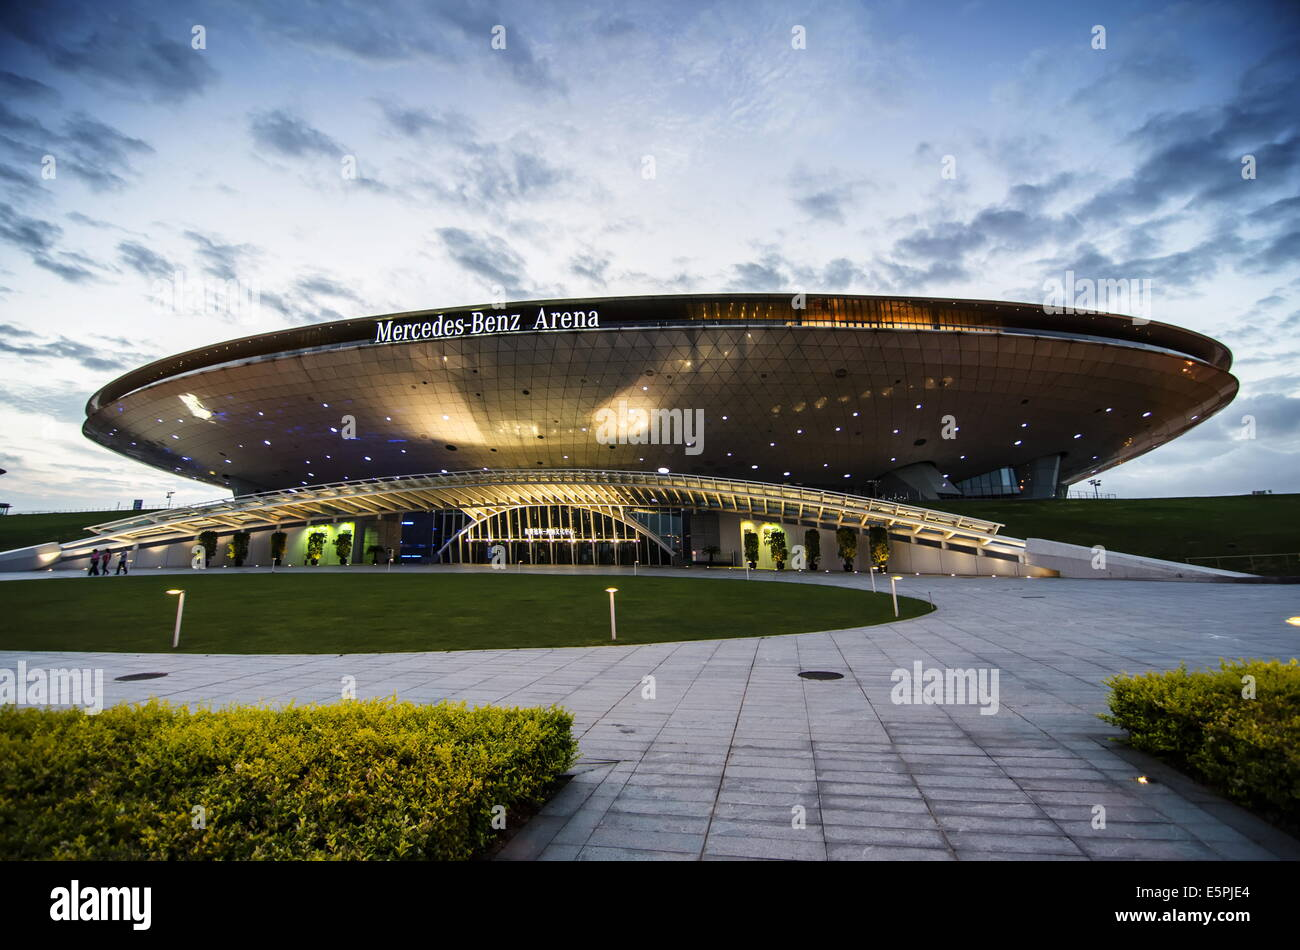 Mercedes Benz Arena Stock Photos & Mercedes Benz Arena Stock Images ...